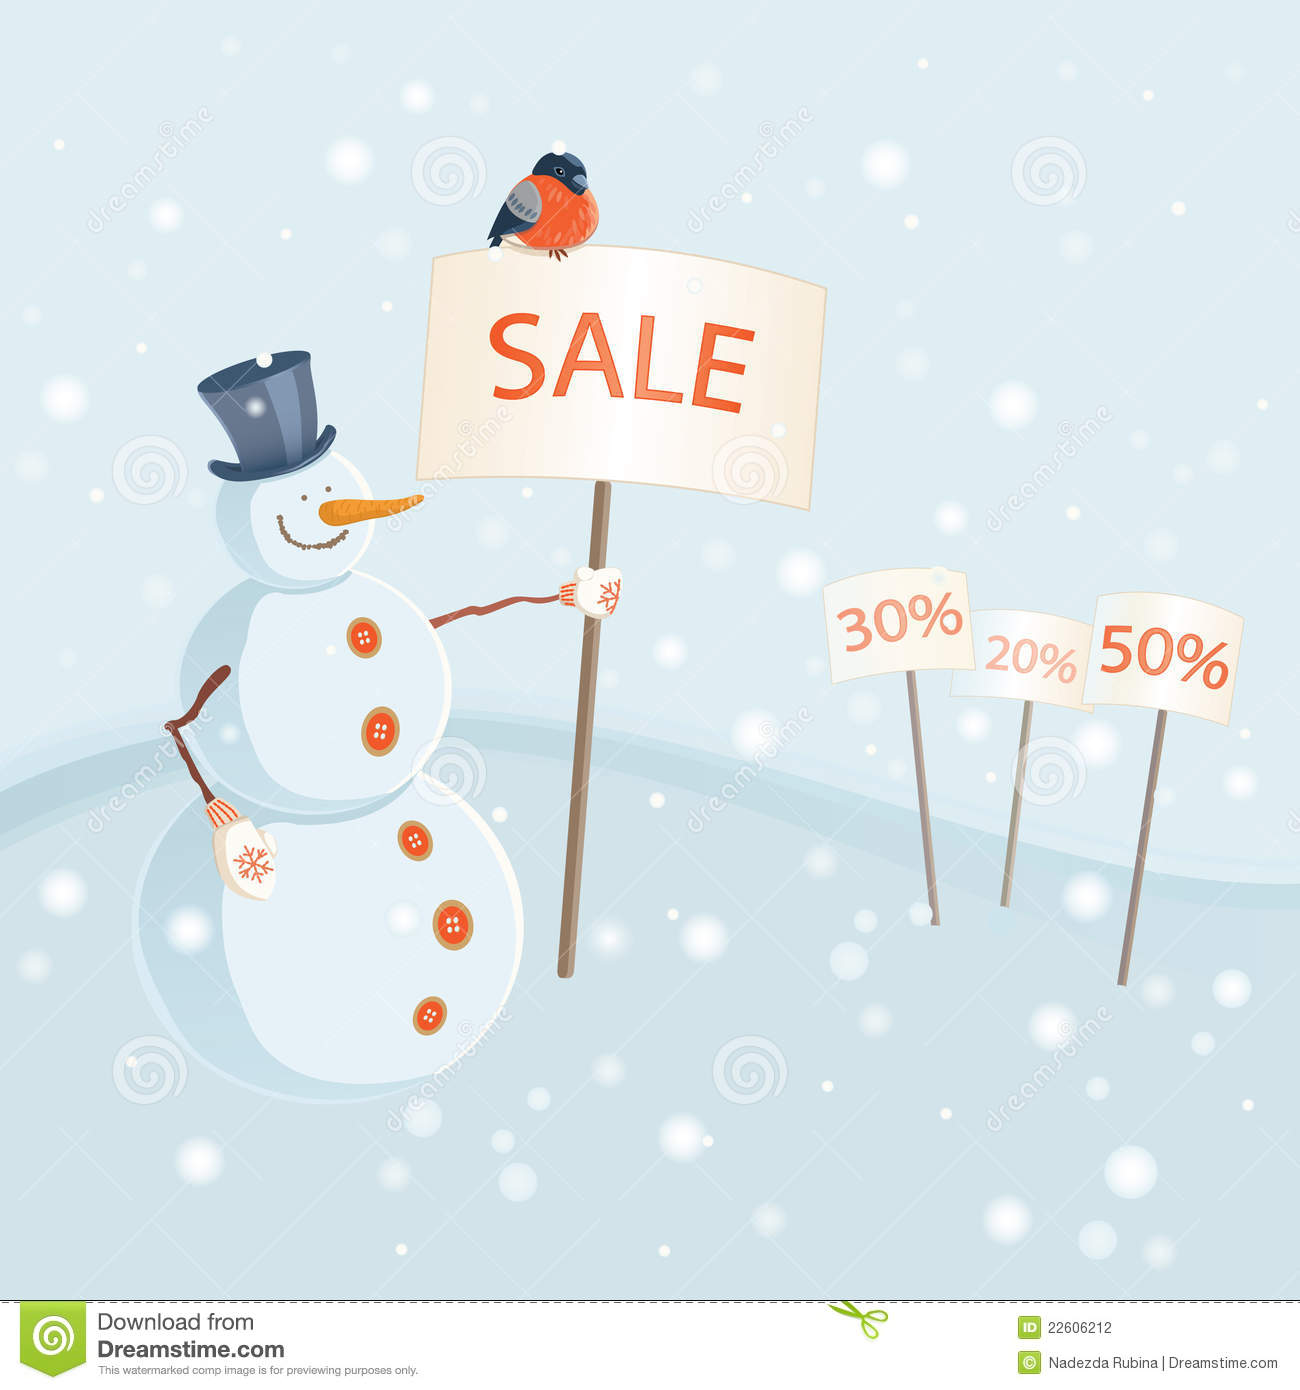 Funny winter sale announcement with a smiling snowman holding a banner